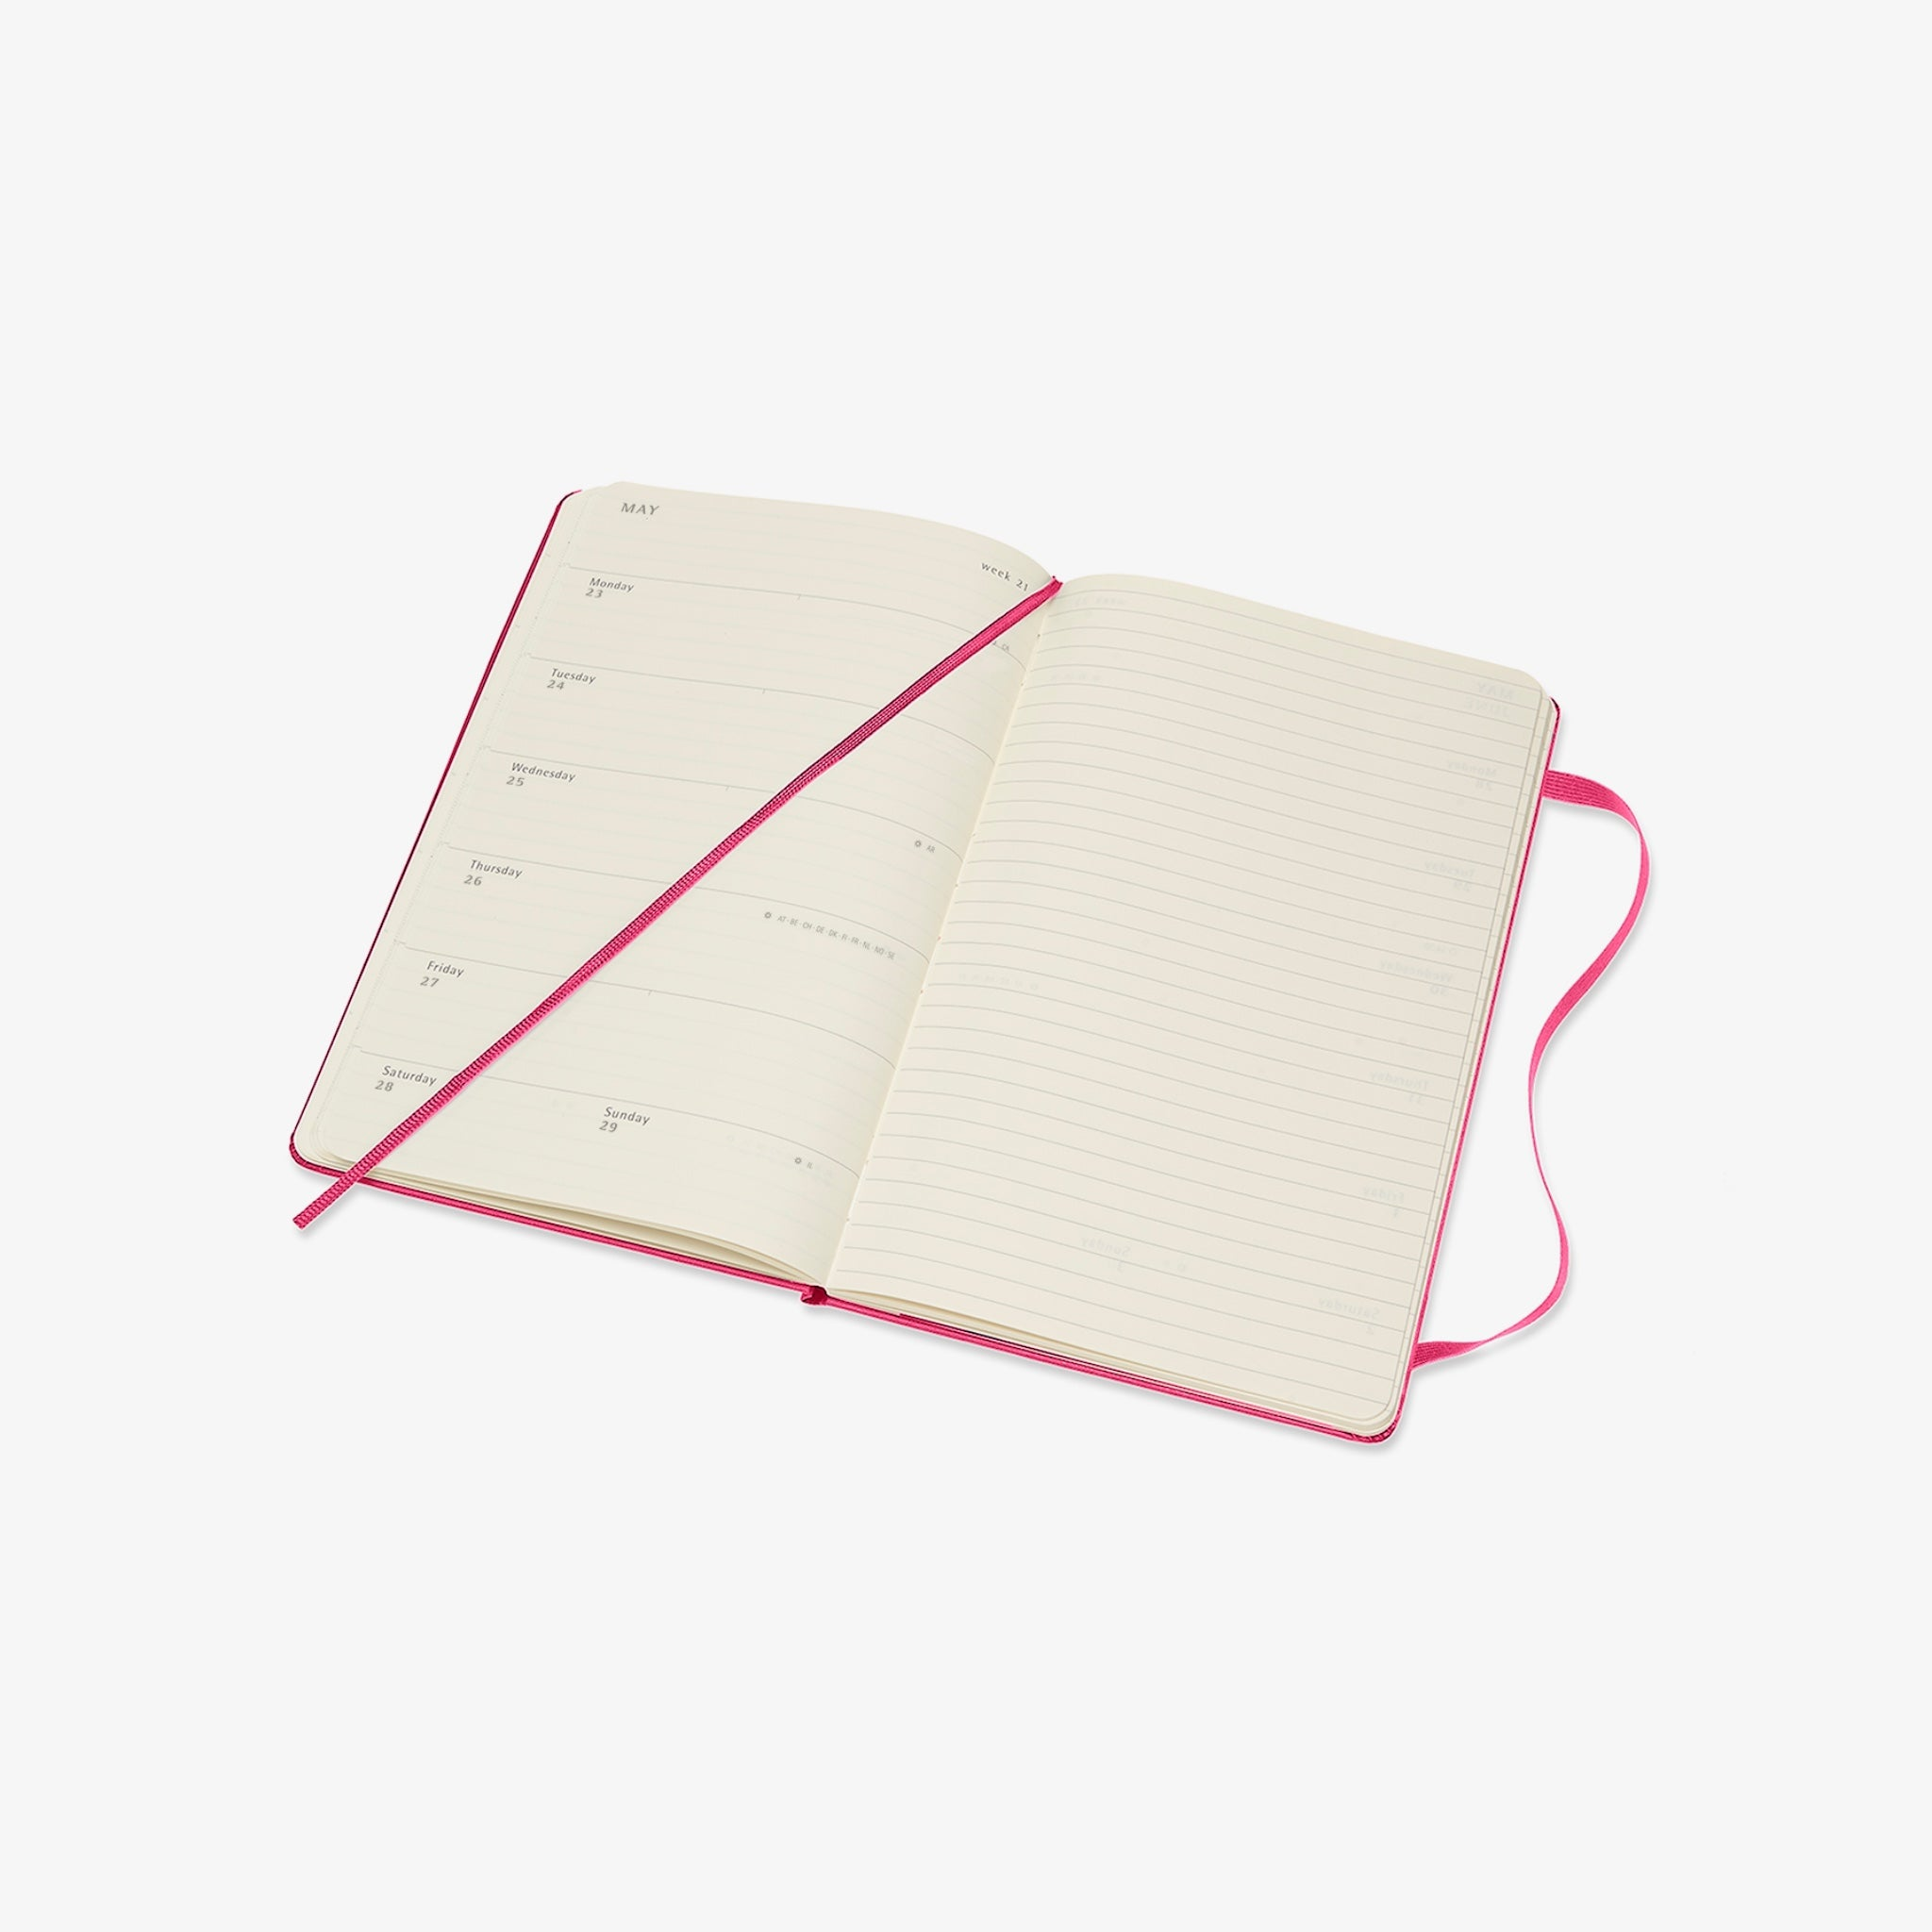 2021/22 Hard Cover Academic Diary - Bougainvillea Pink